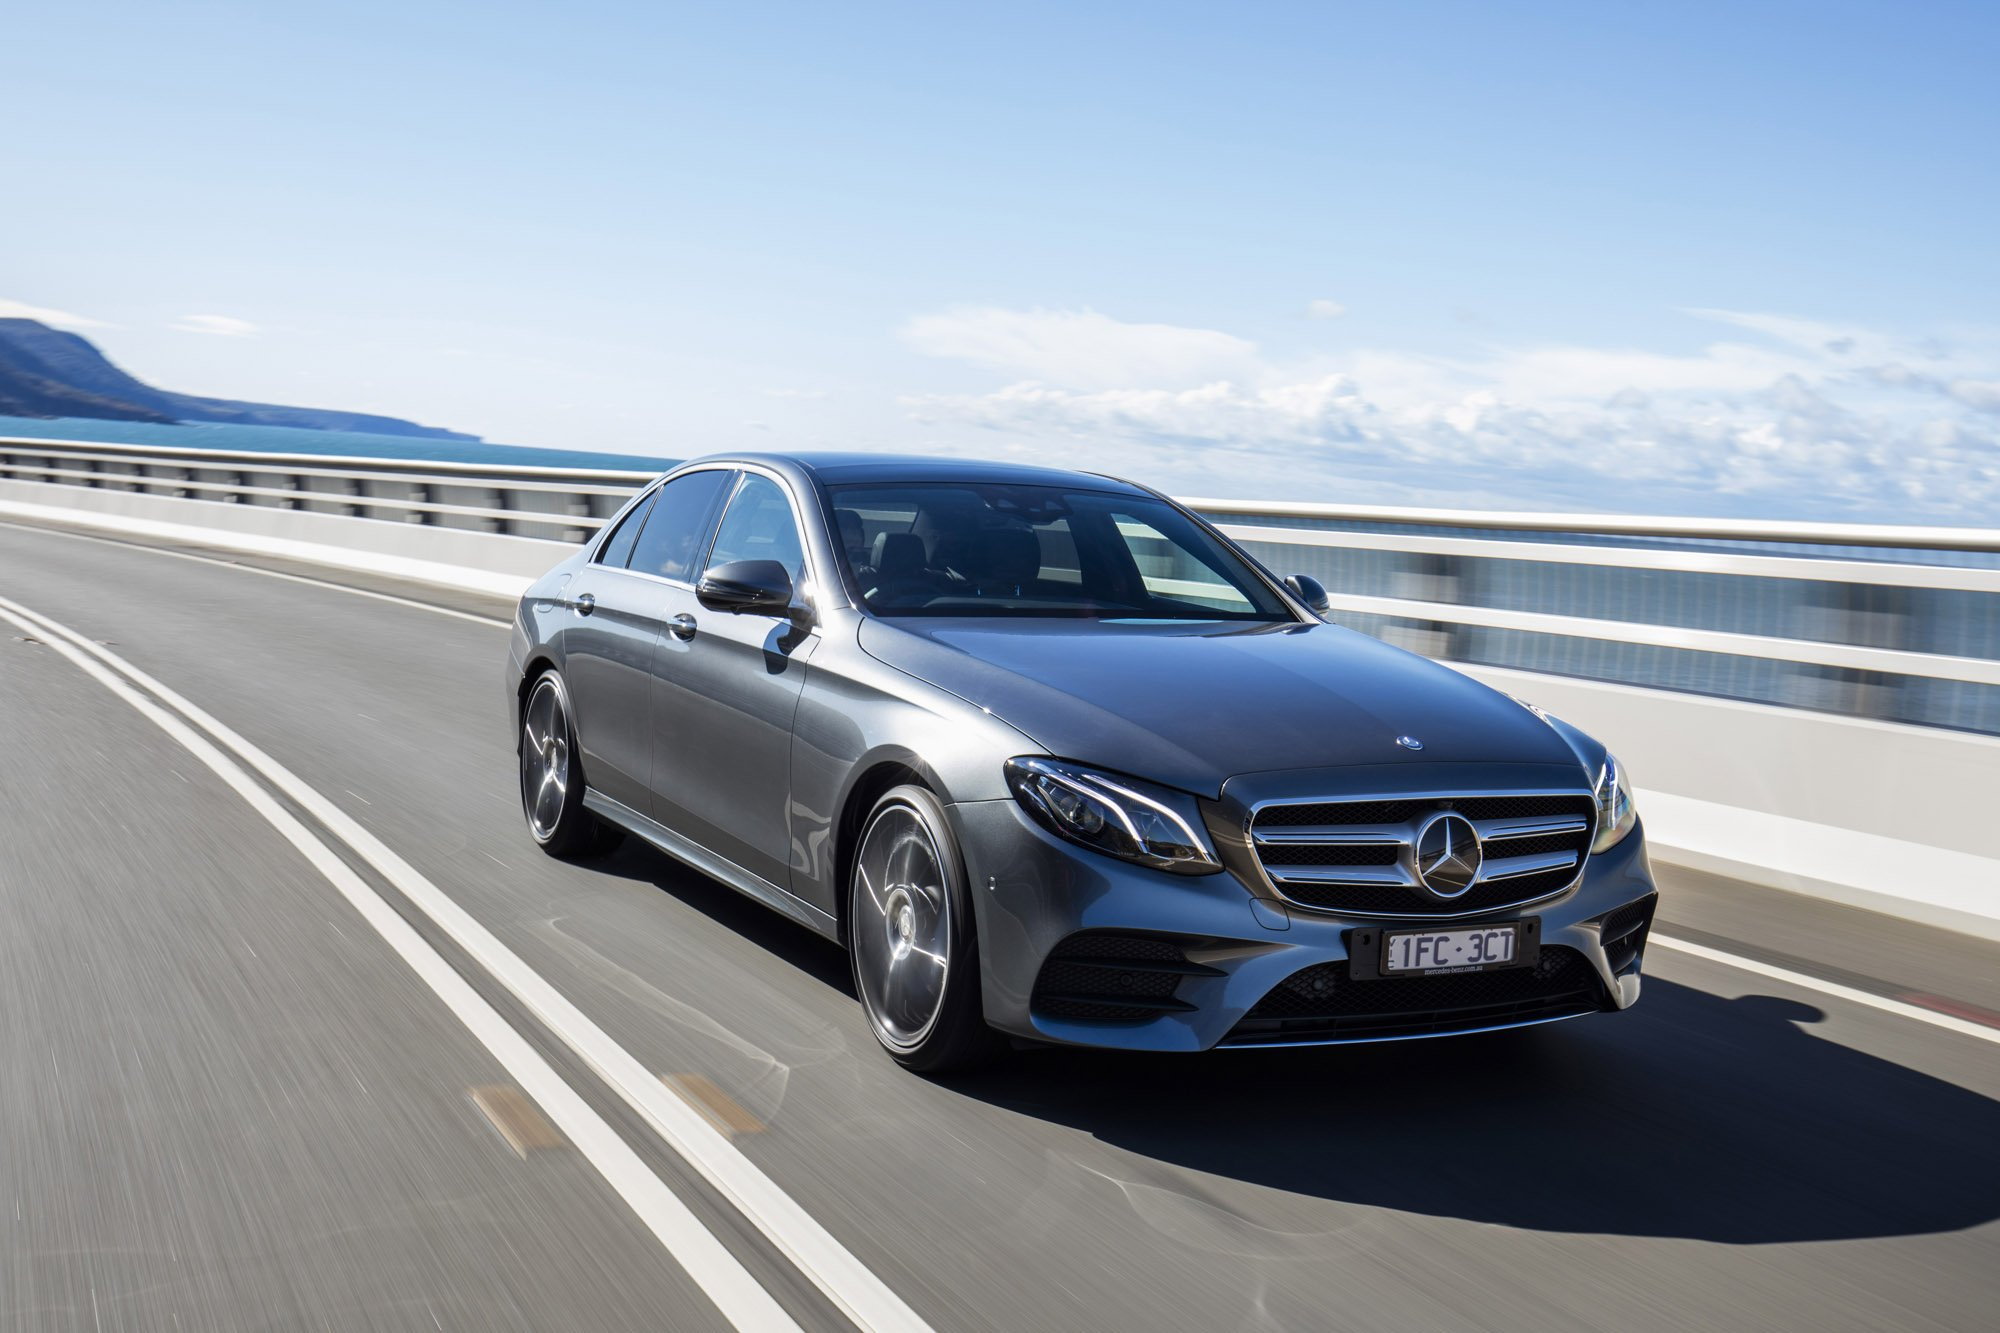 2016 mercedes benz e class review photos caradvice for Pictures of a mercedes benz